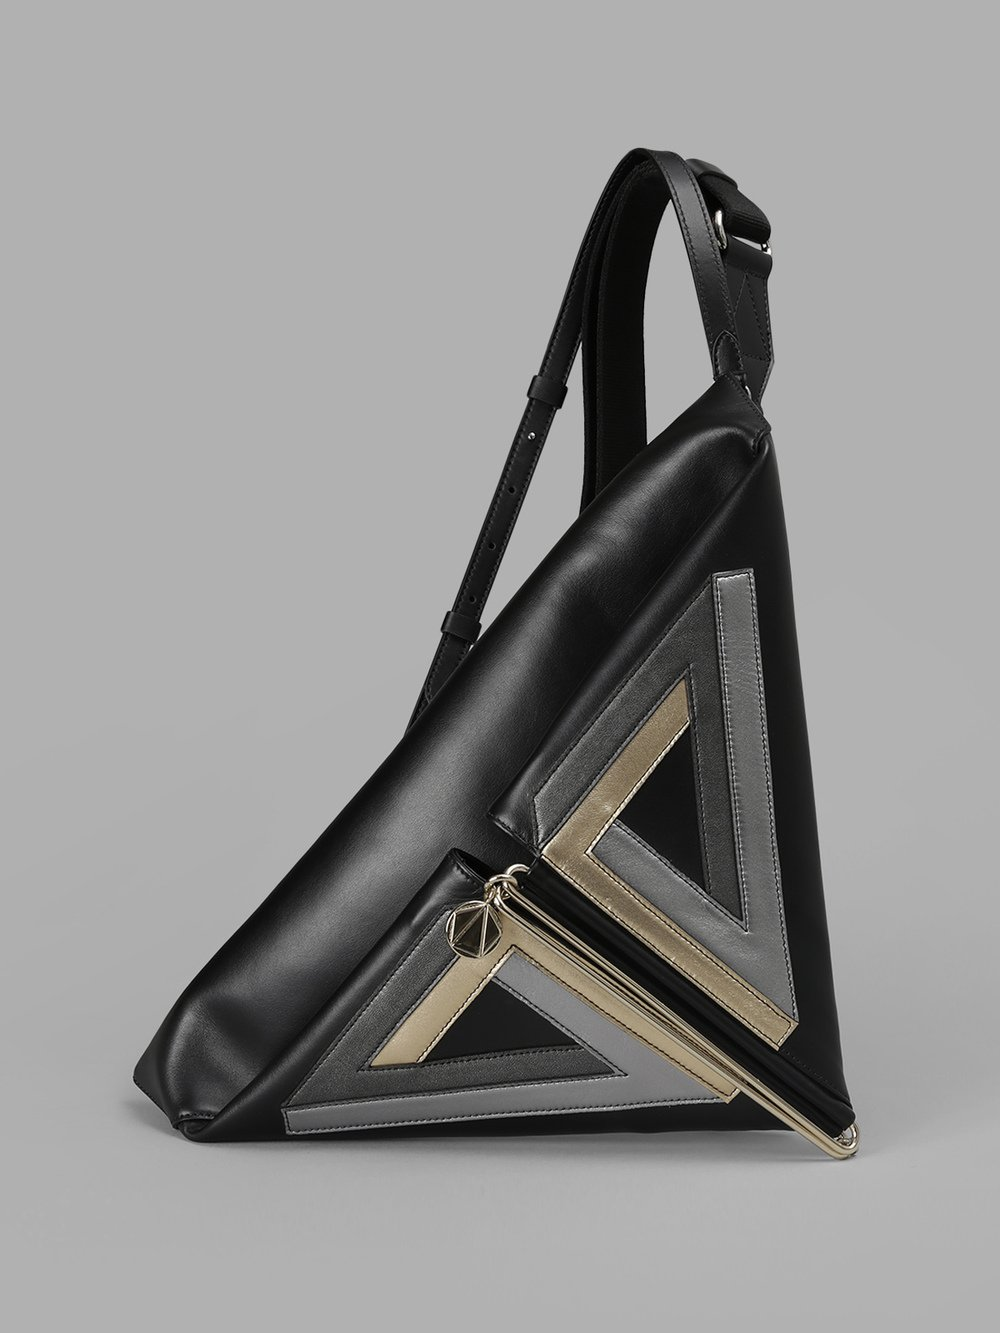 SIMONE RAINER Simone Rainer Black Triangle Bag With Metal Details